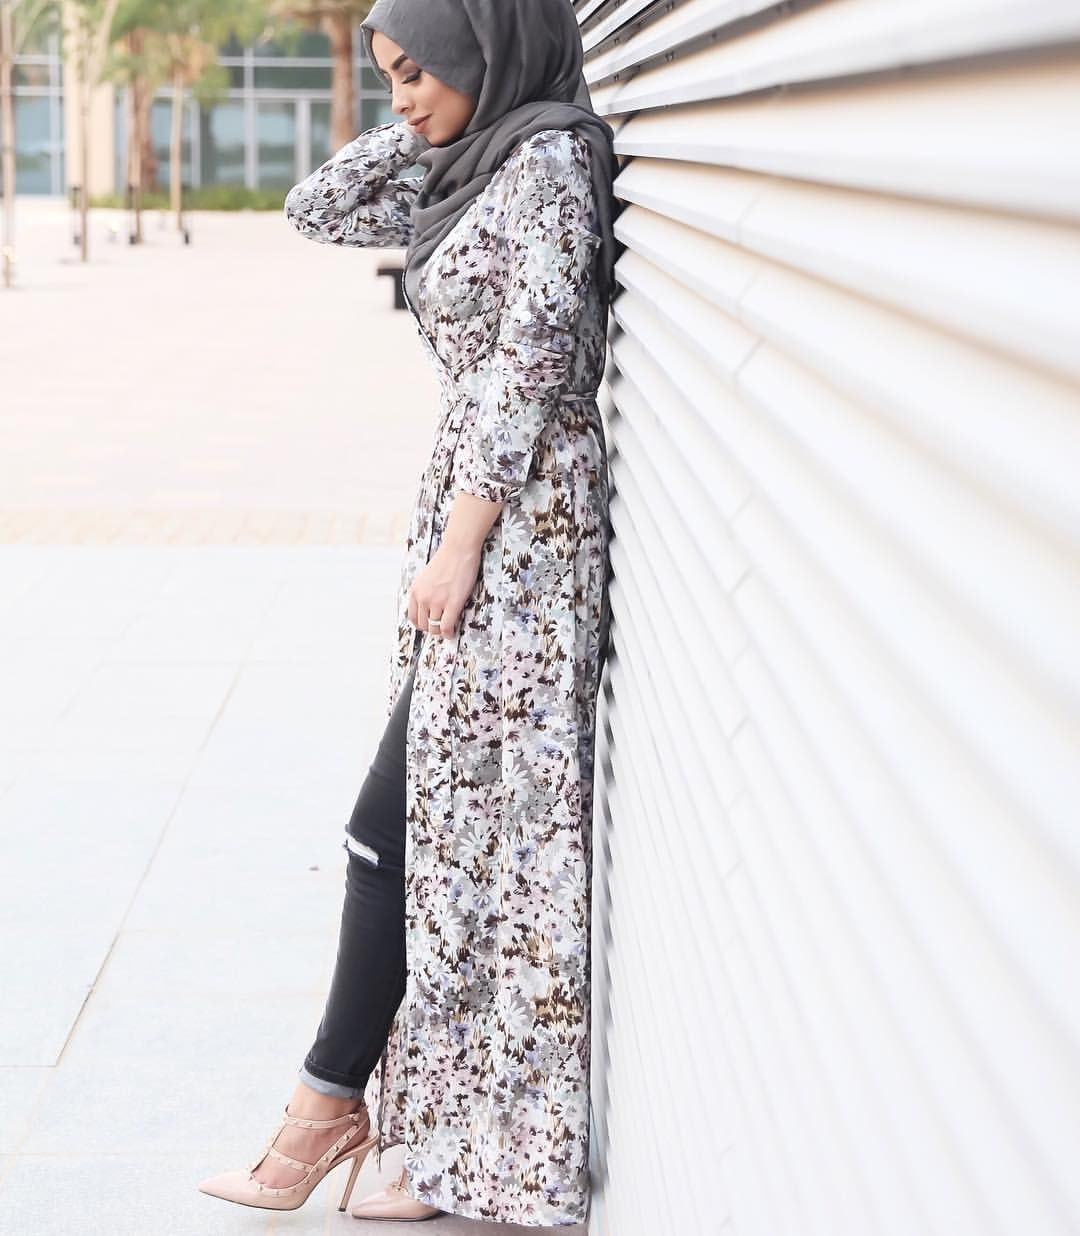 Lace look with hijab, islamic fashion, street fashion, stiletto heel, fashion blog